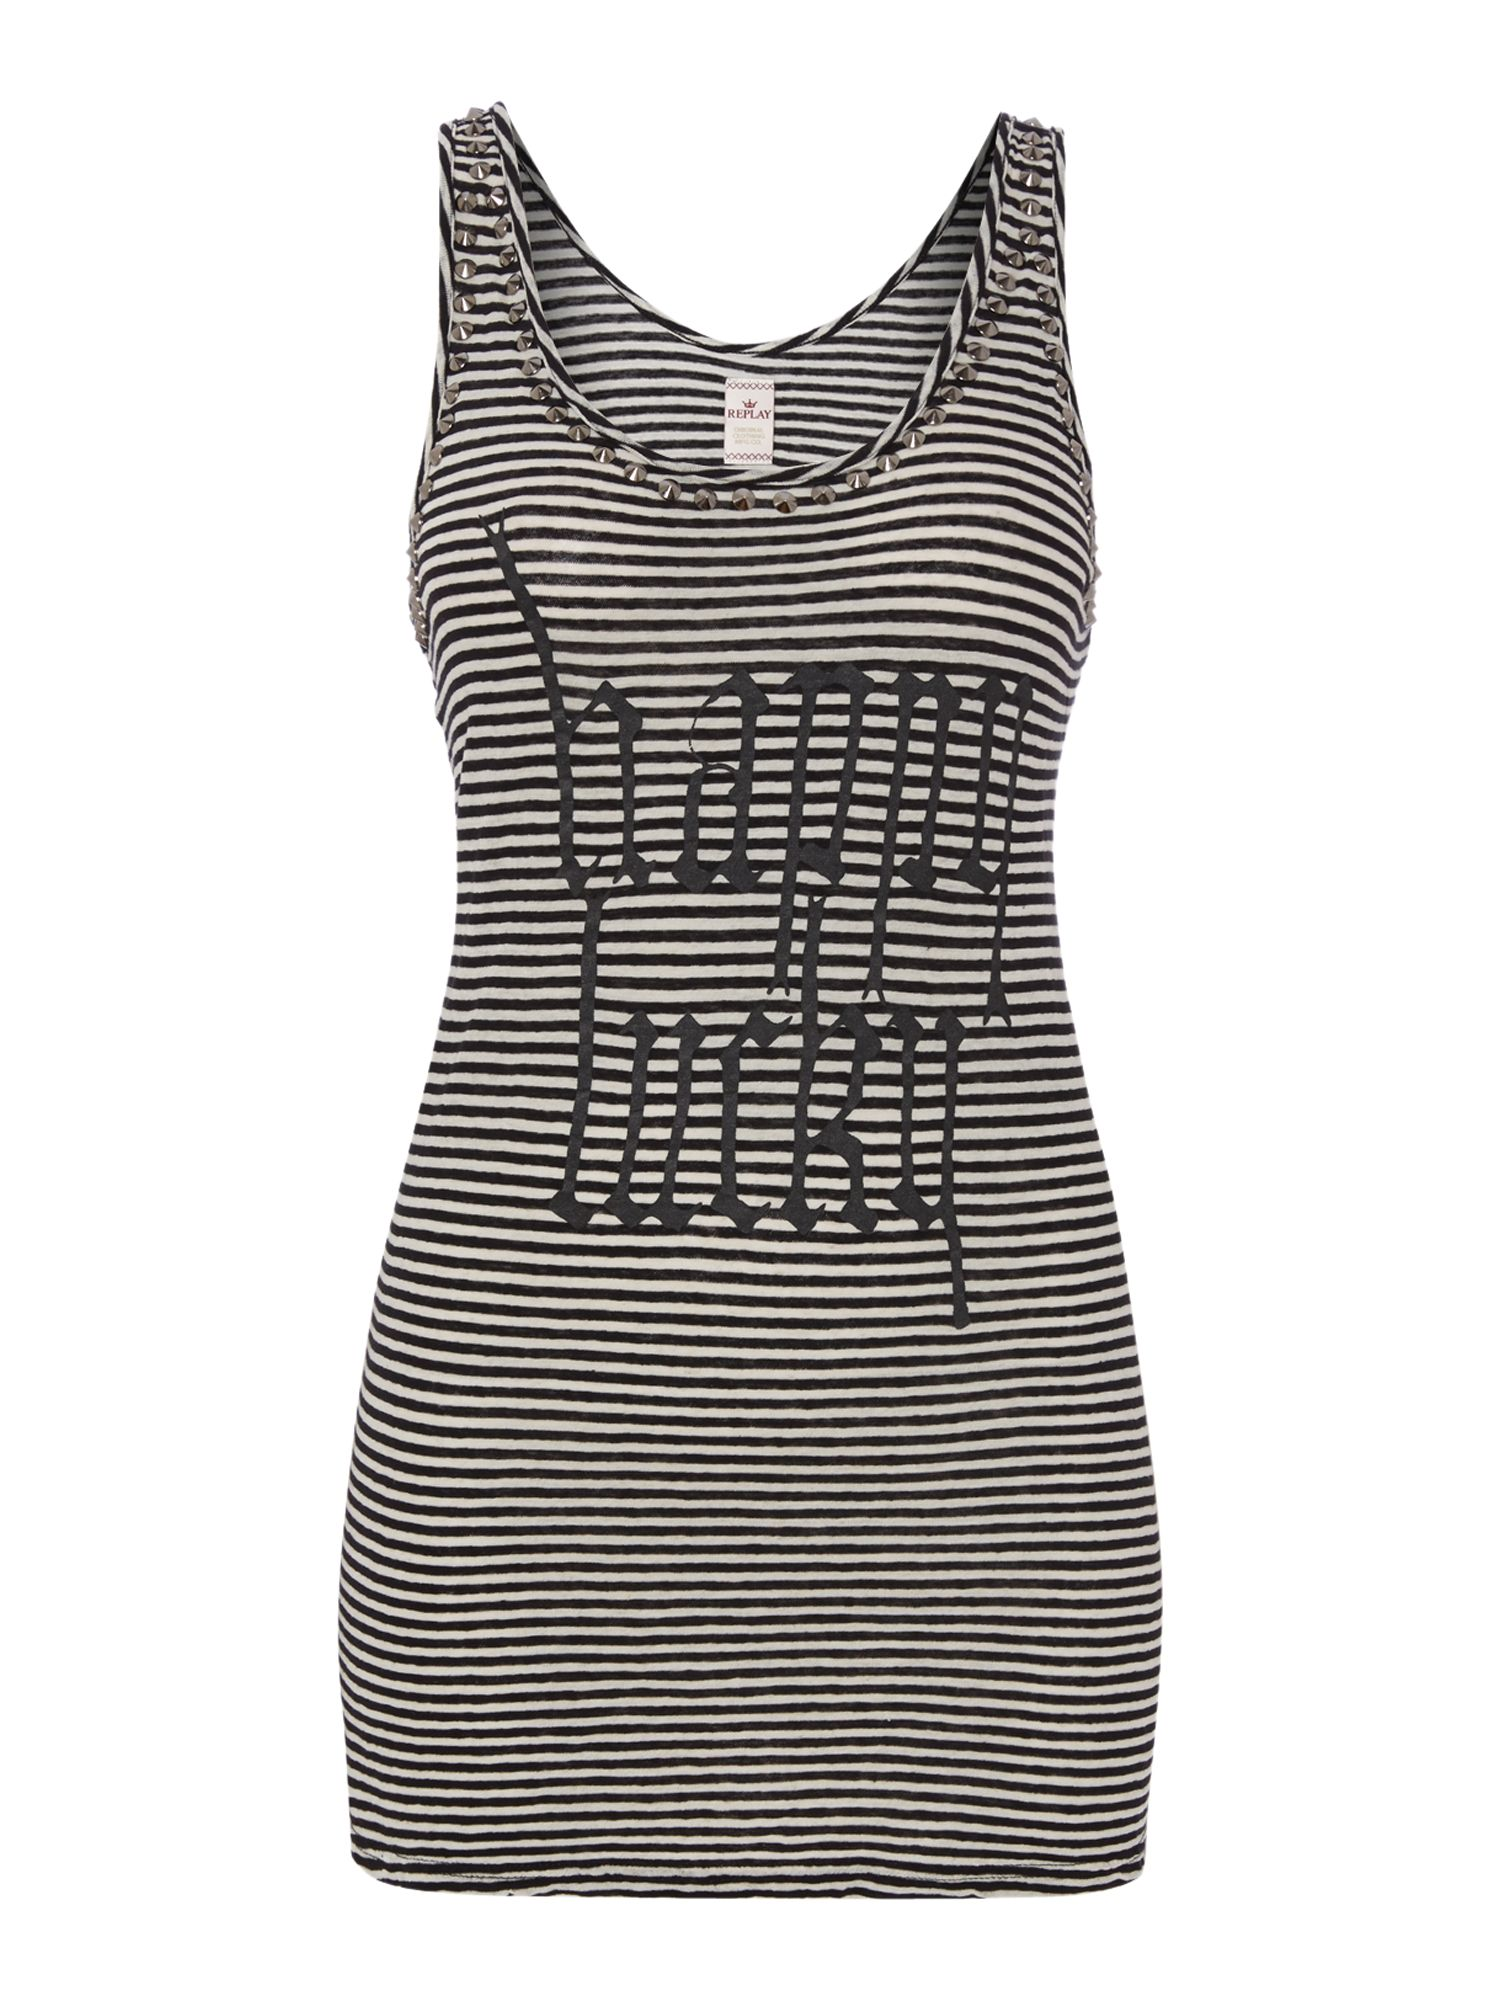 Striped cotton linen tank top